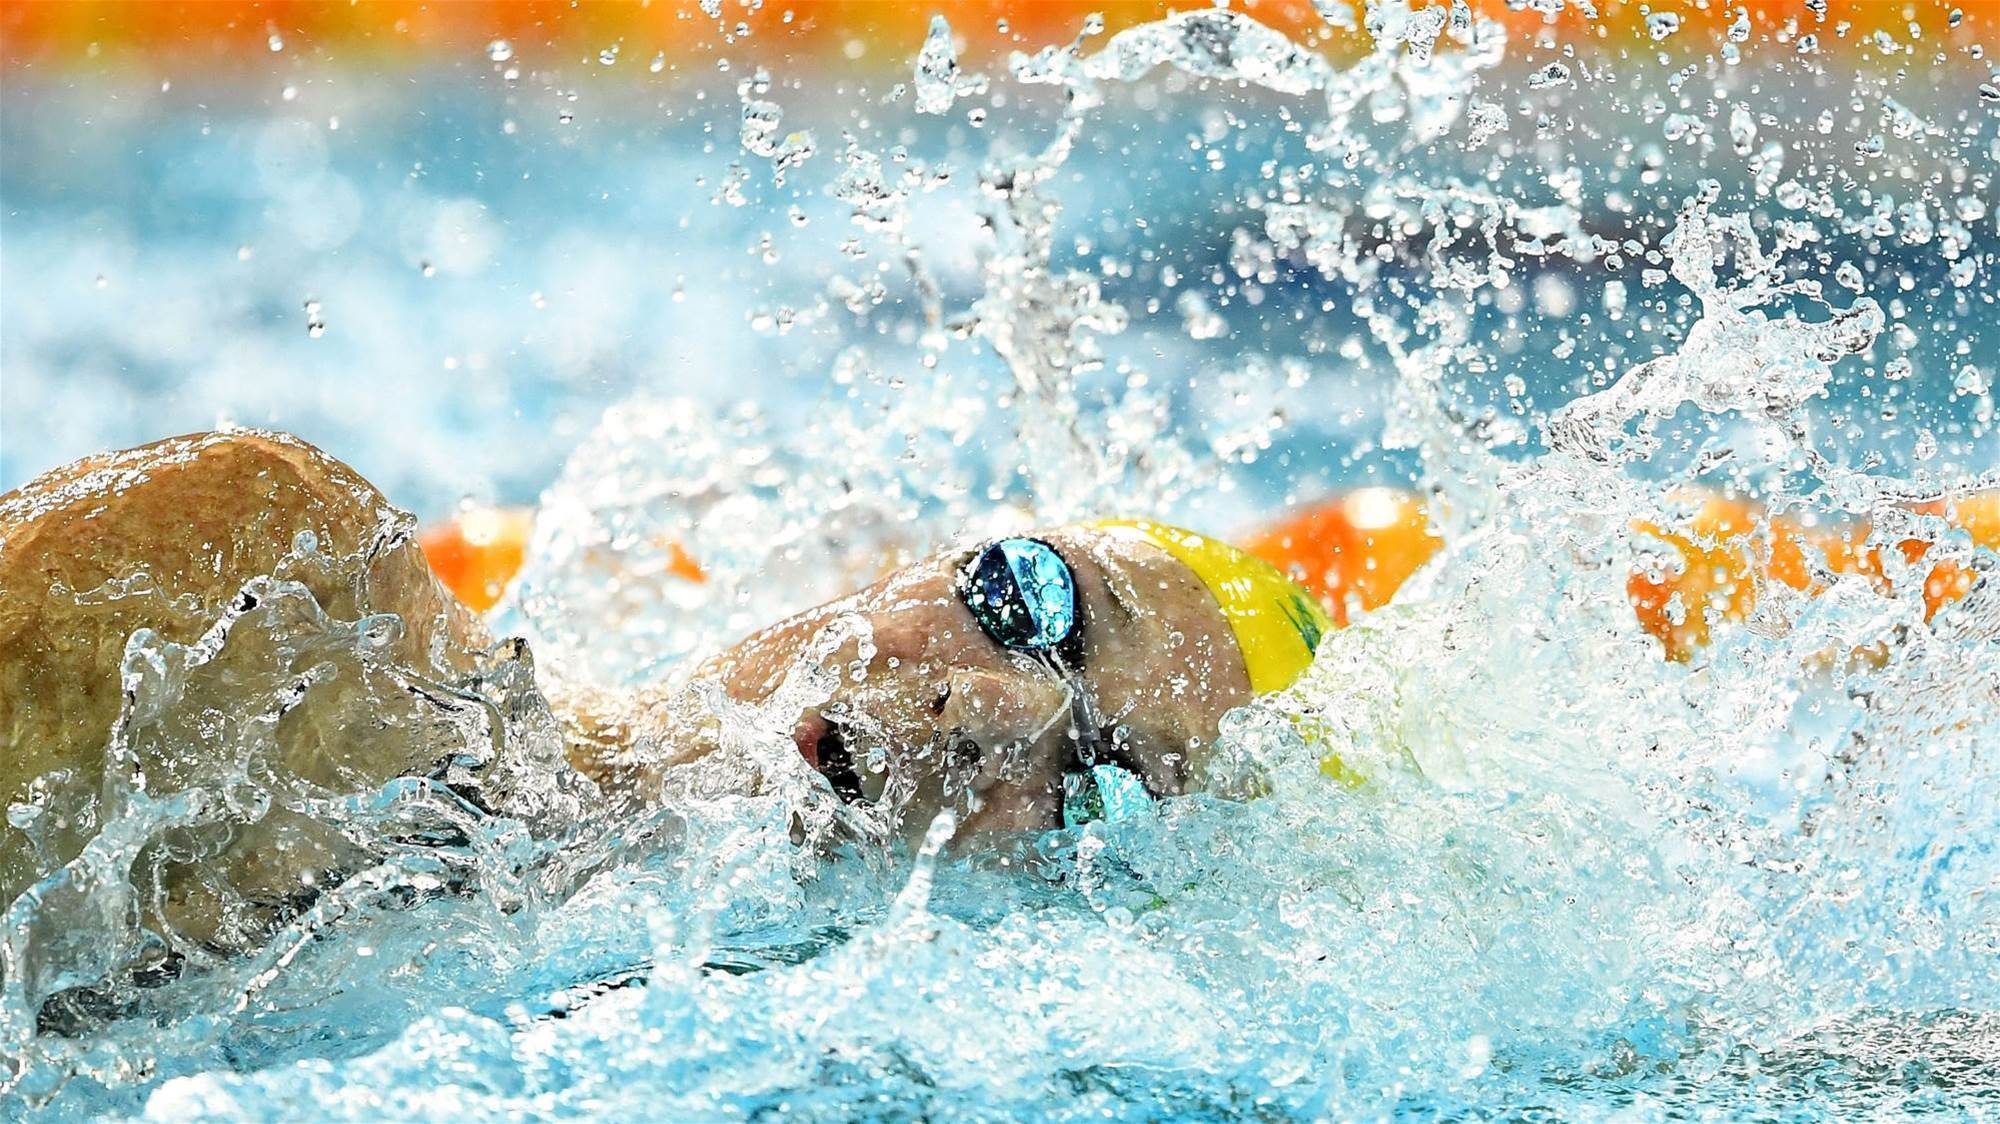 Cate Campbell has sights firmly set on Tokyo